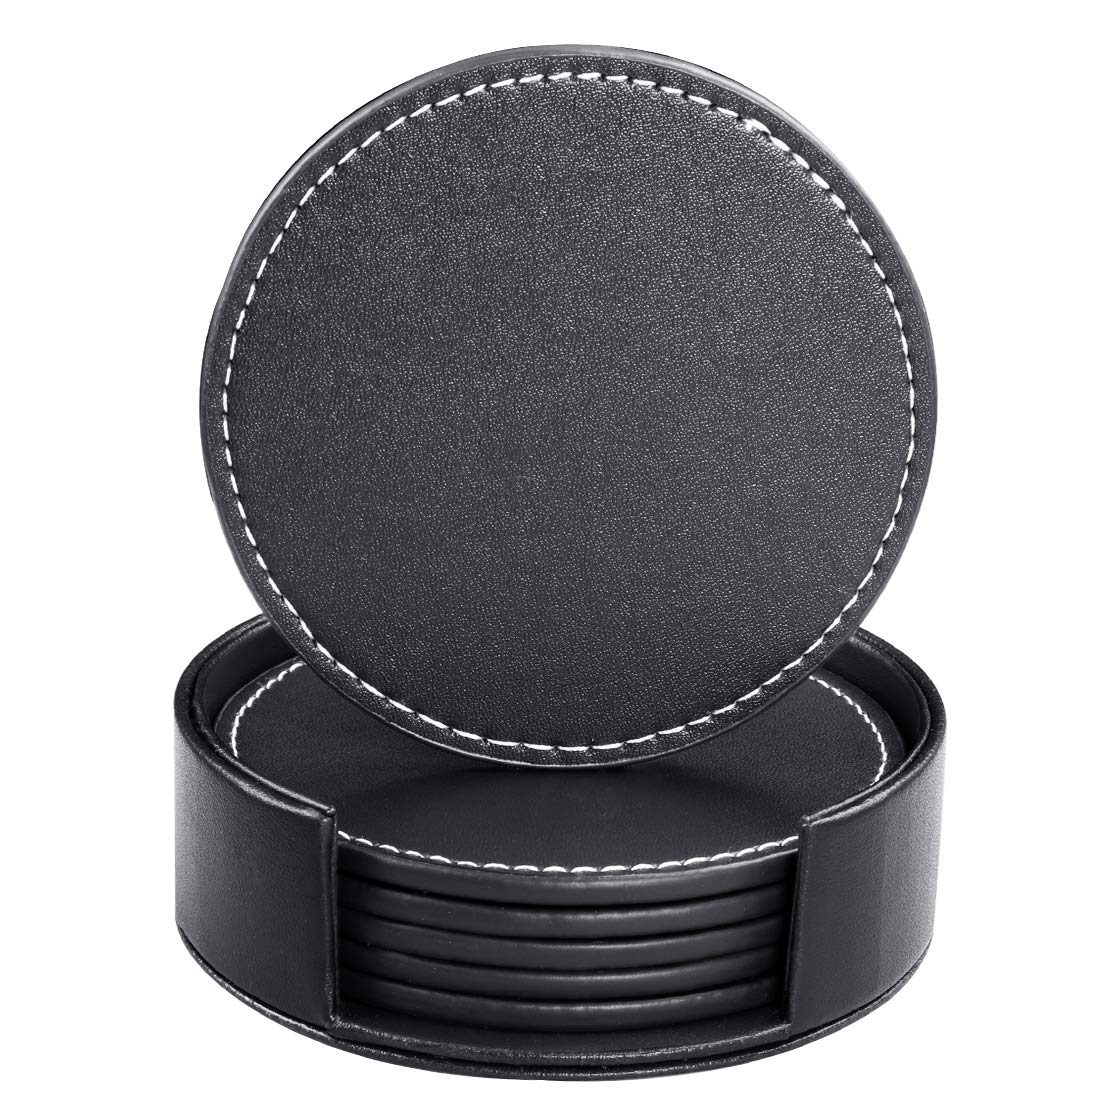 hibeer Leather Coasters for Drinks, Handmade Set of 6 PU Coaster with Holder, Protect Furniture from Water (Black, Round)